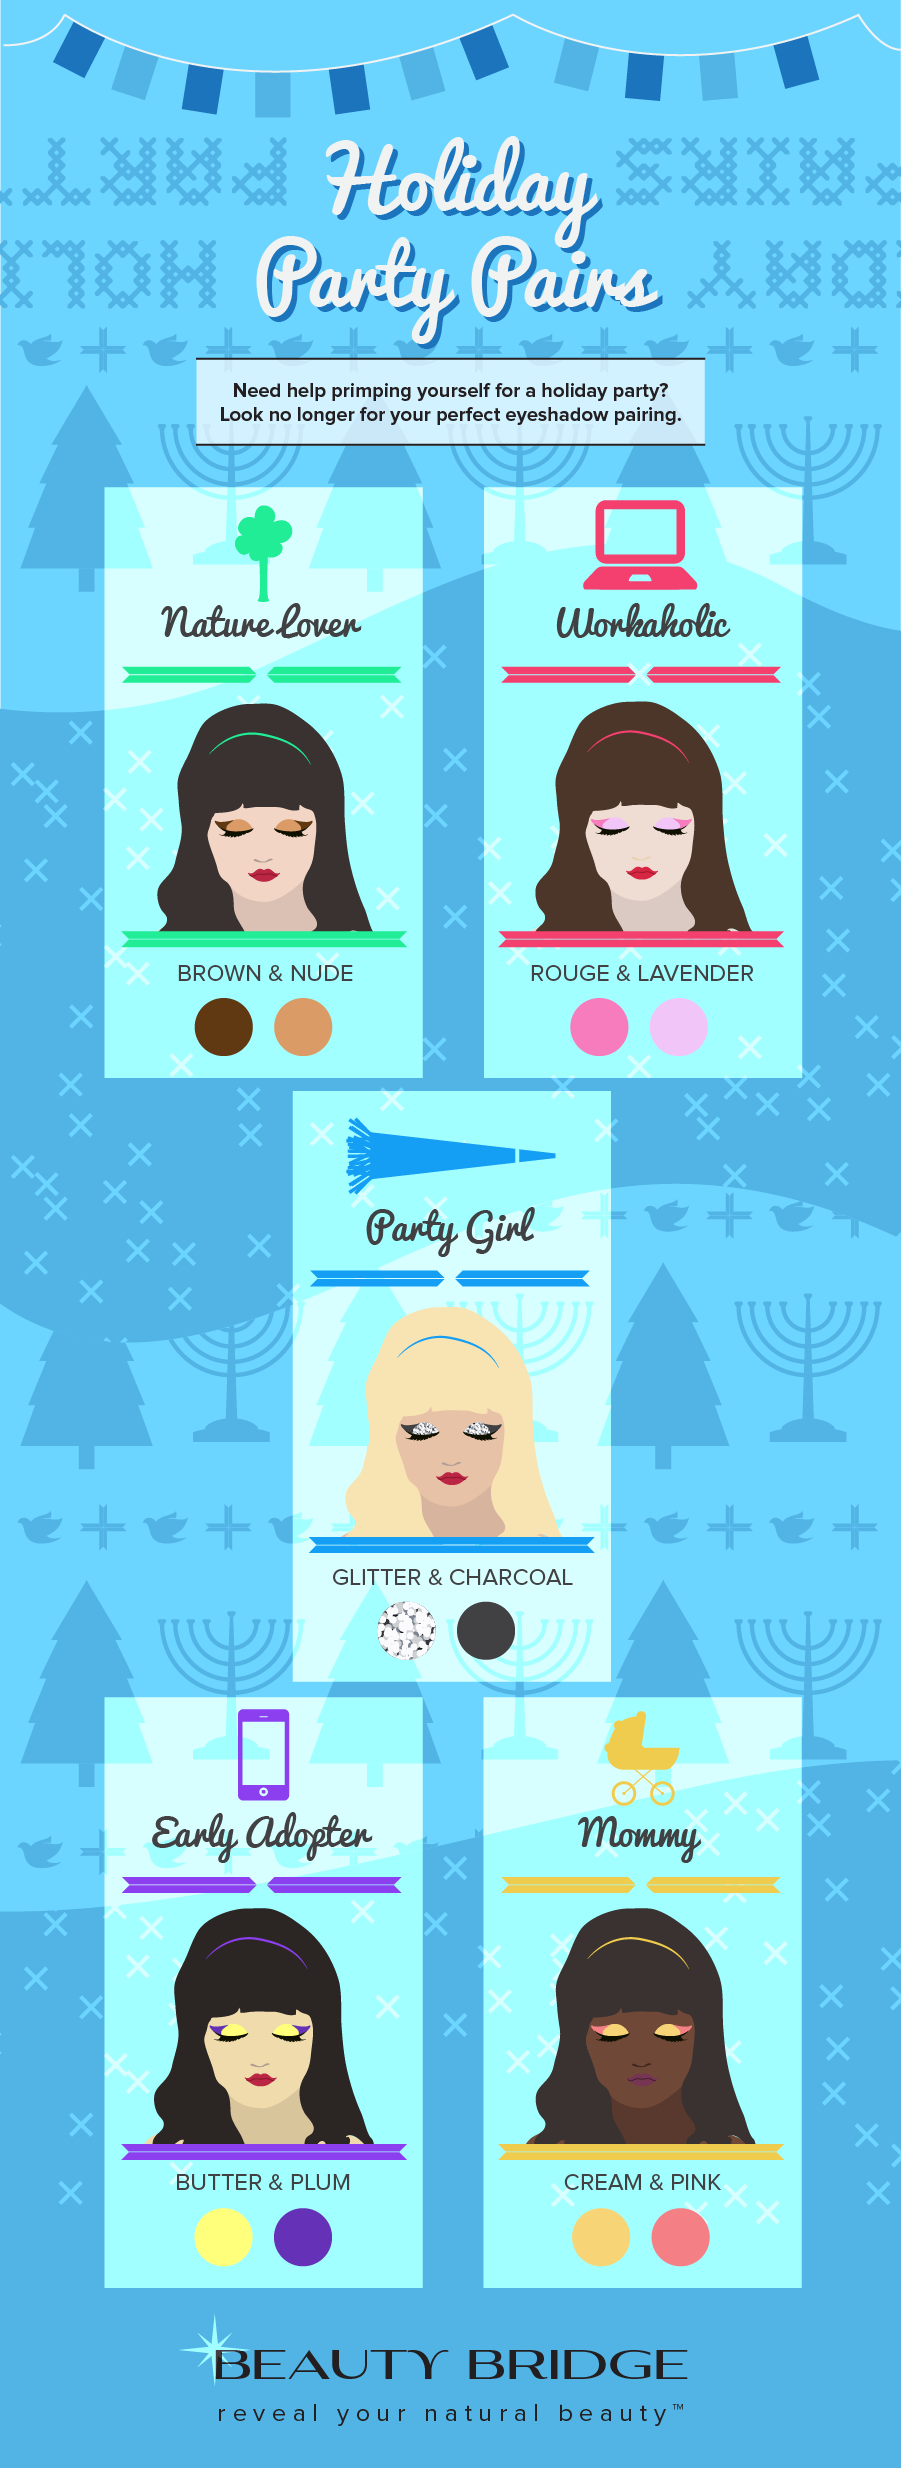 Holiday Party Eyeshadow Pairing